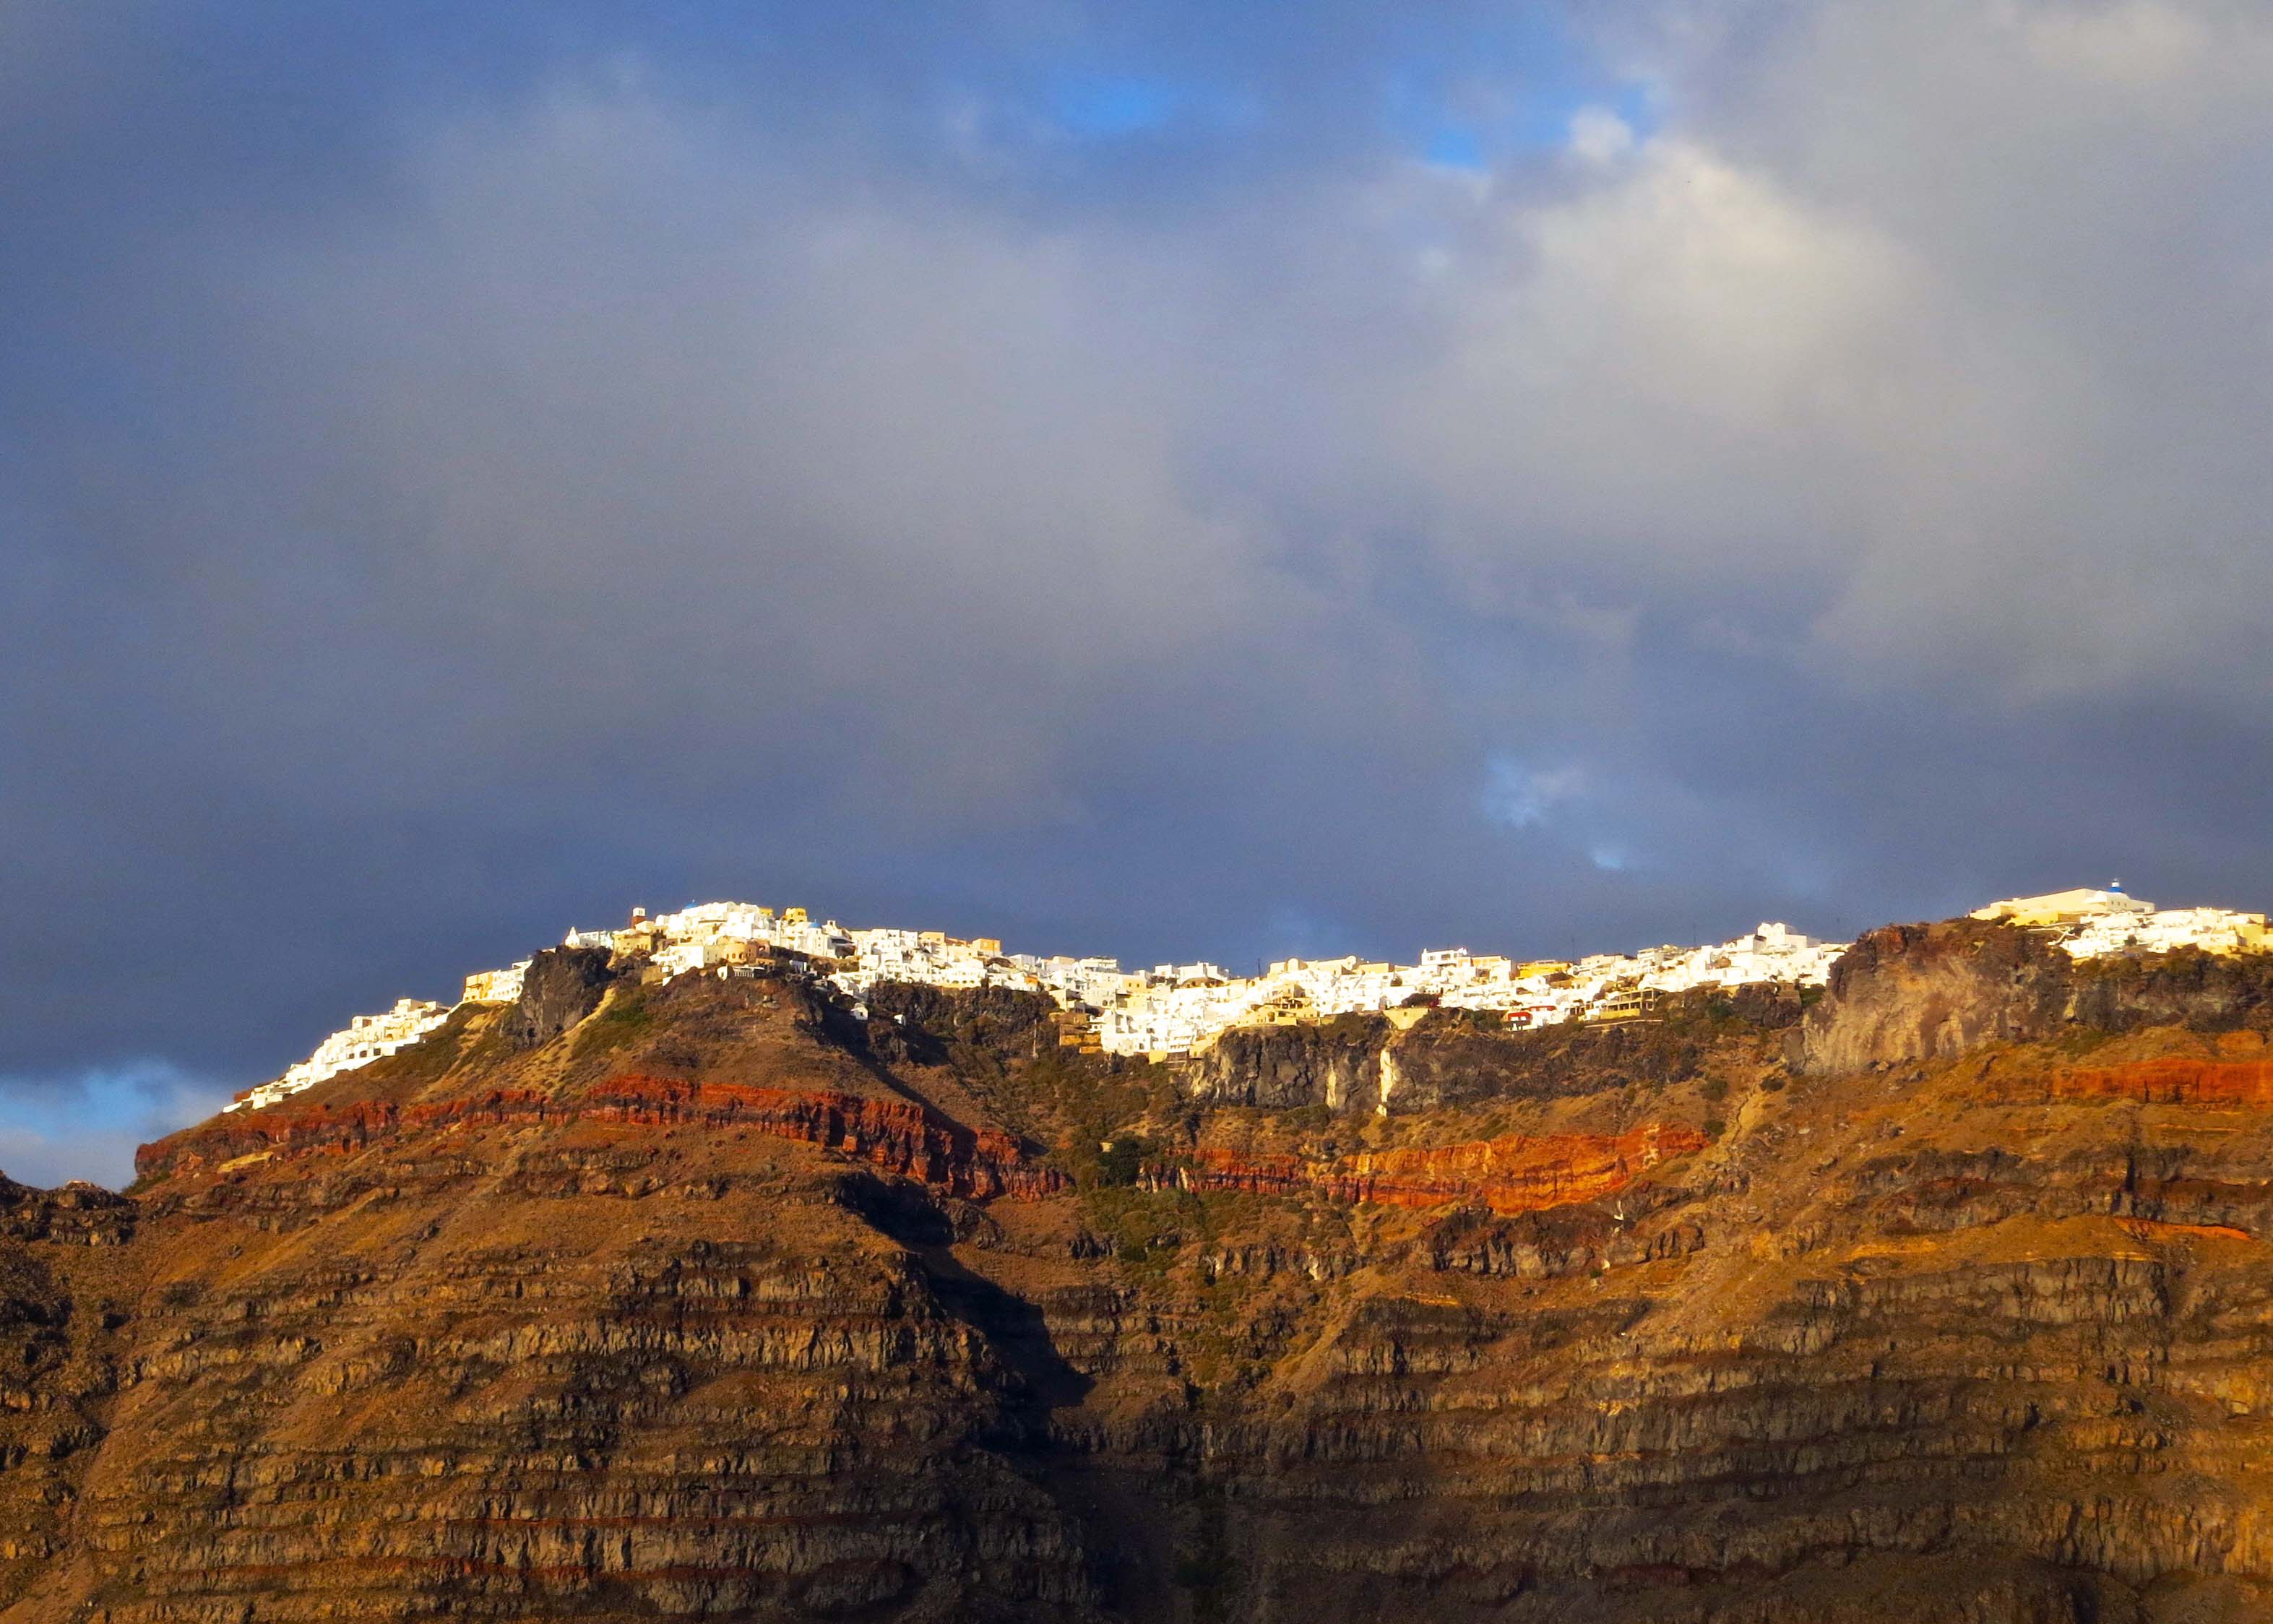 santorini a photographer s paradise the wednesday photo essay this photo provides a perspective on how high the small communities of santorini perch above the